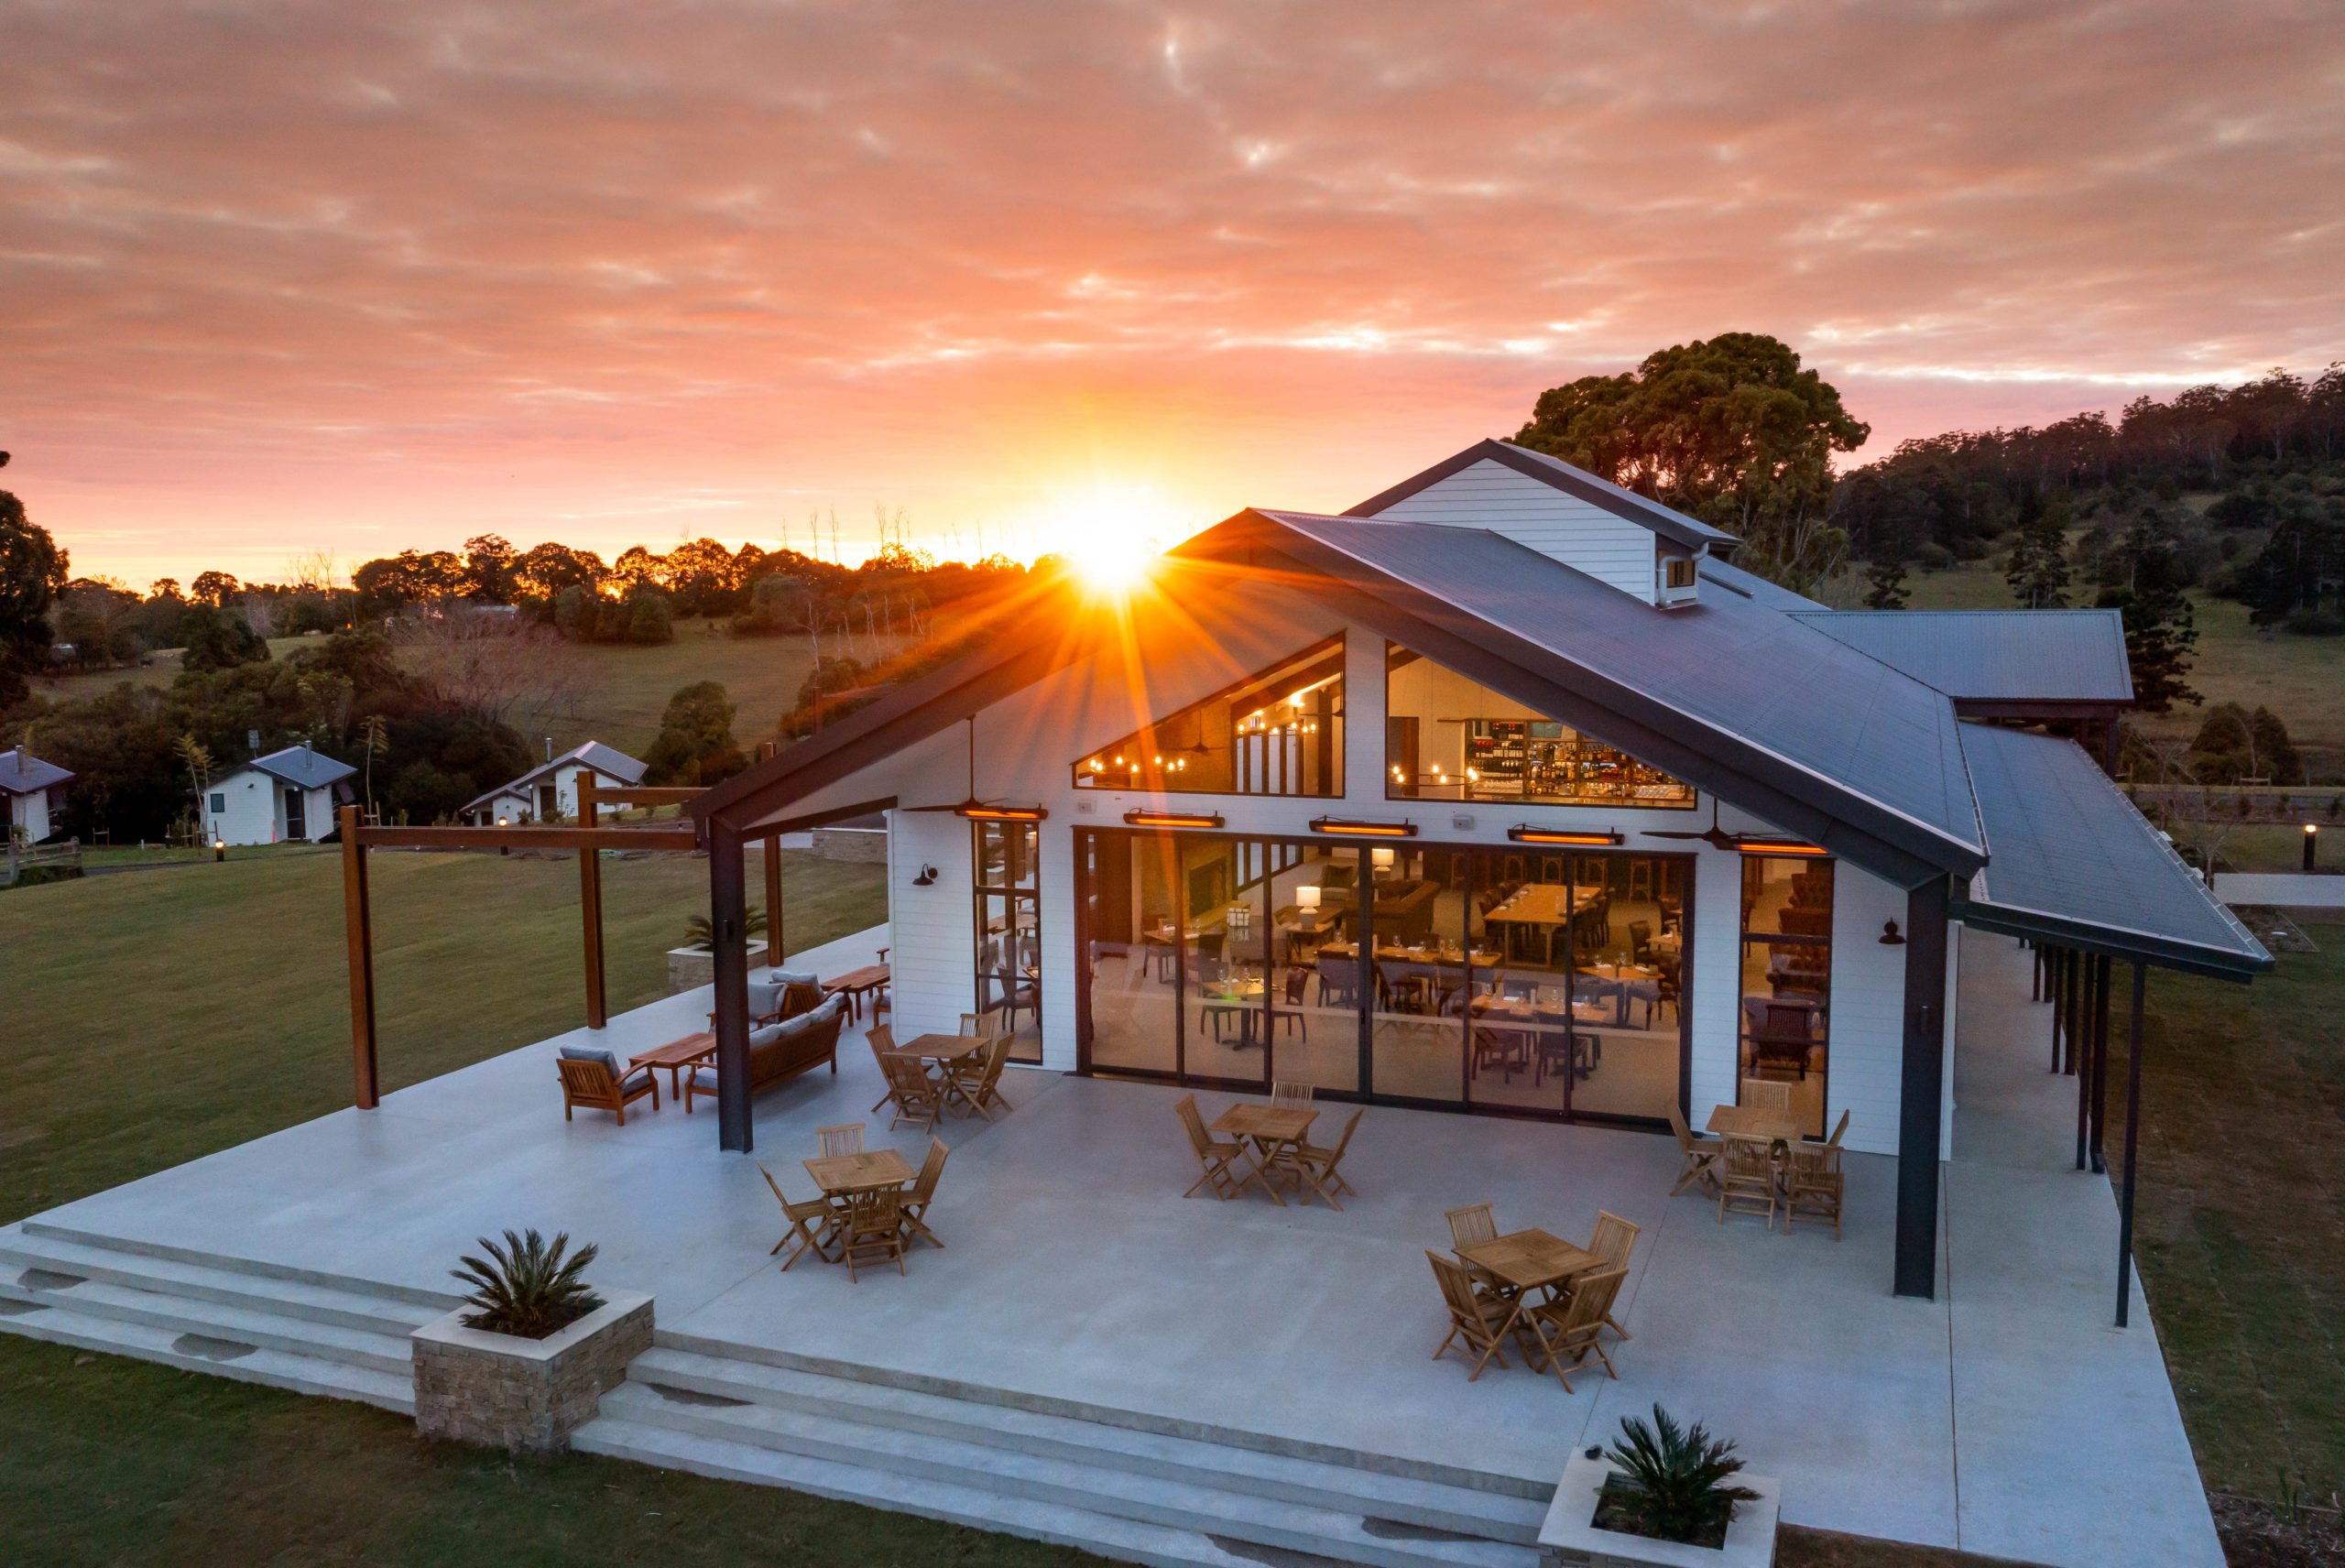 Hazelwood Retreat, anew luxury destination set on a 75-acre wagyu and polo farm Australia's Scenic Rim, willtransport visitors to a place of wide-open spaces and fresh country air.